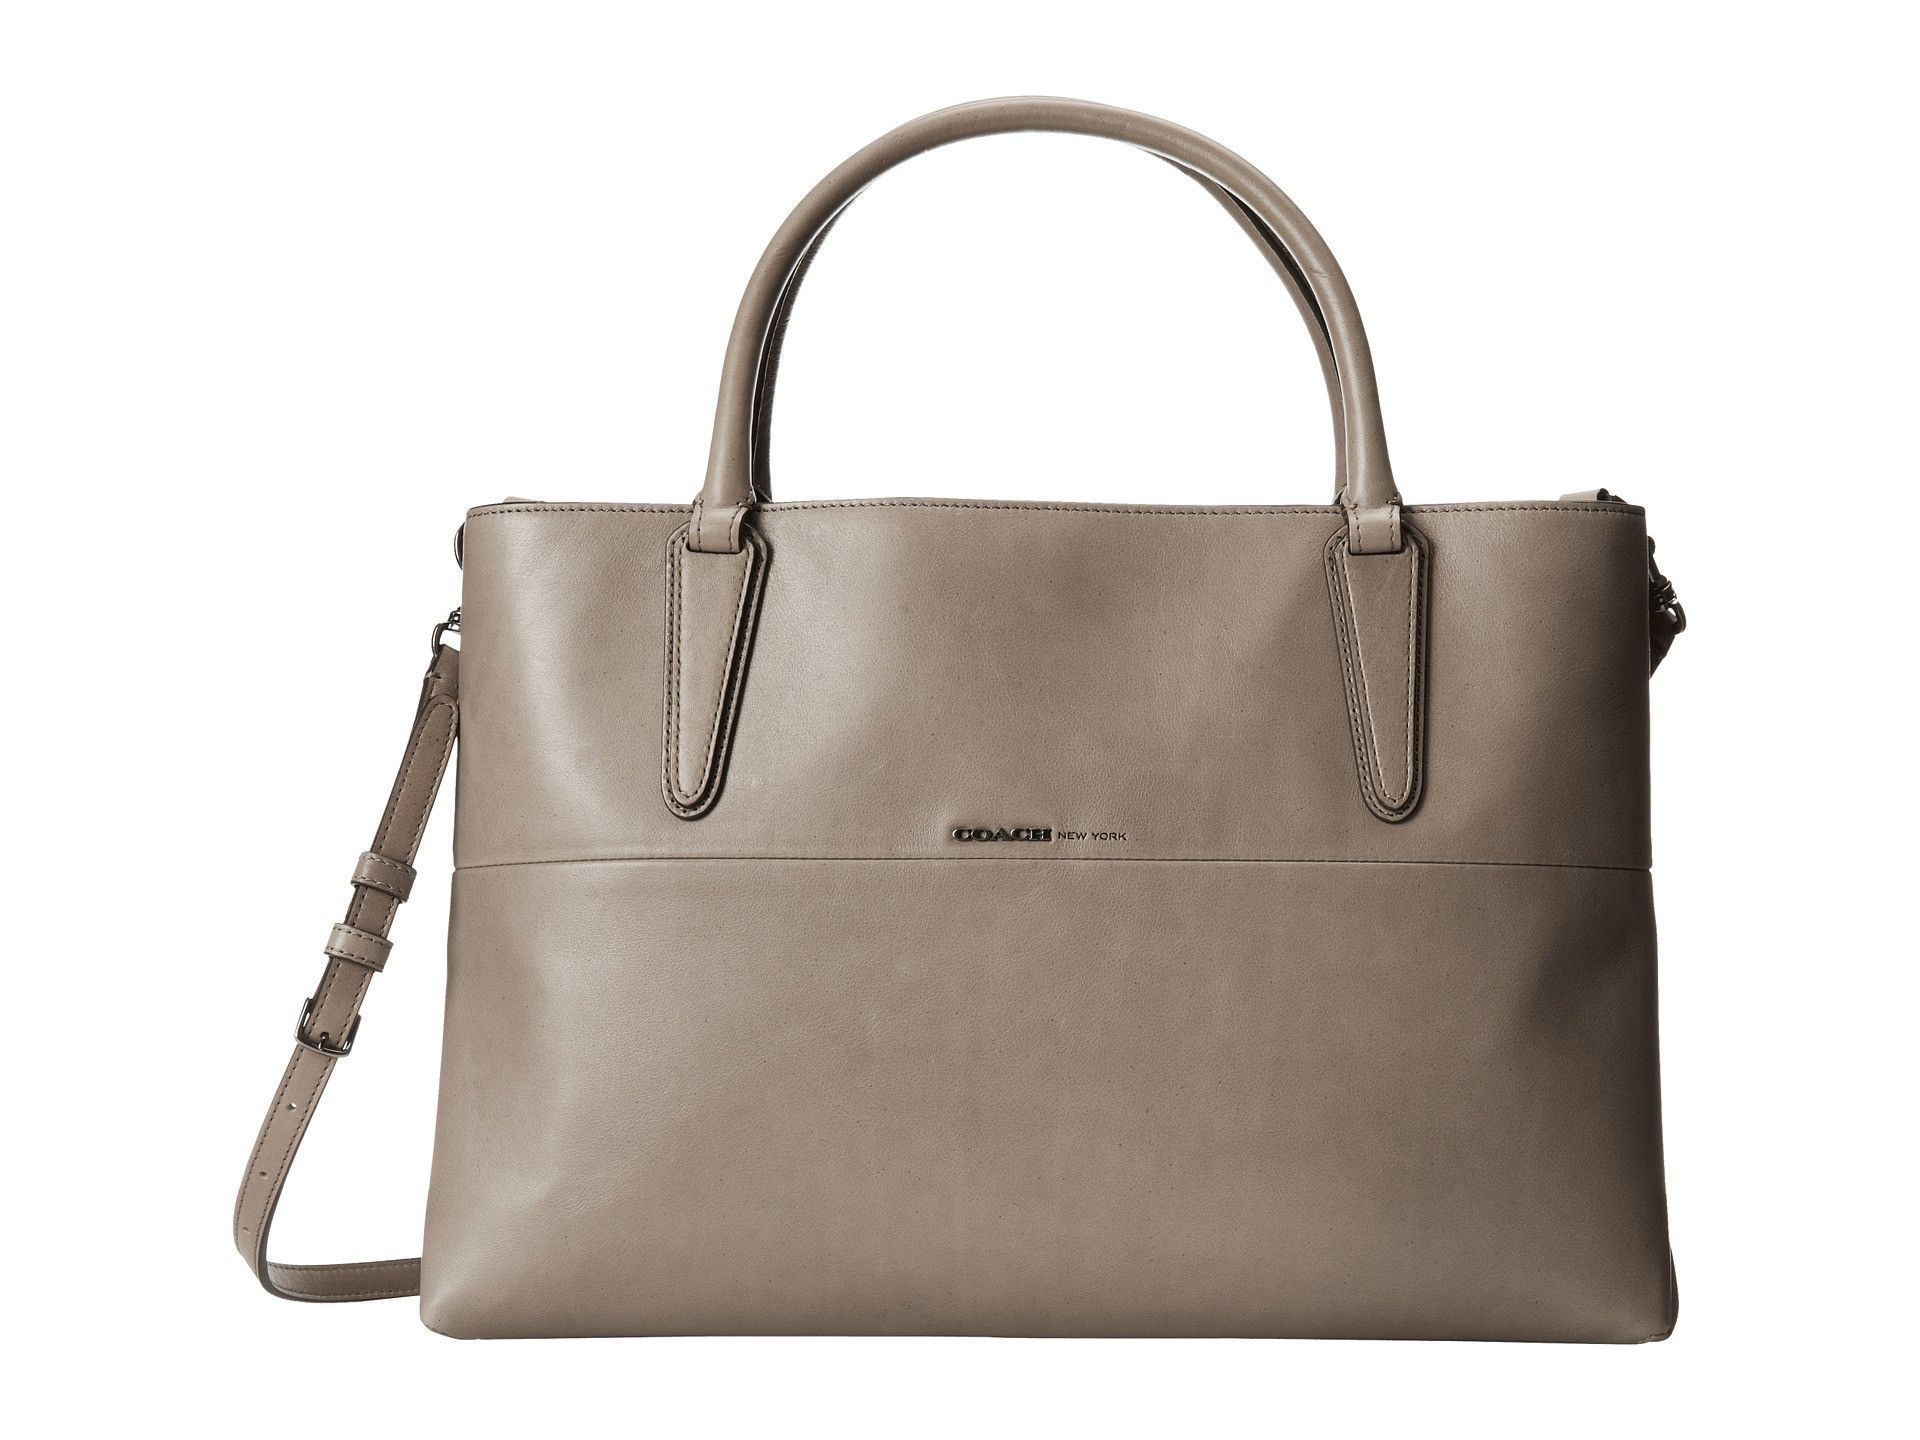 sweden coach legacy duffle in pebbled leather bloomingdales coach soft borough  bag in earth brown nappa 8f87384d60